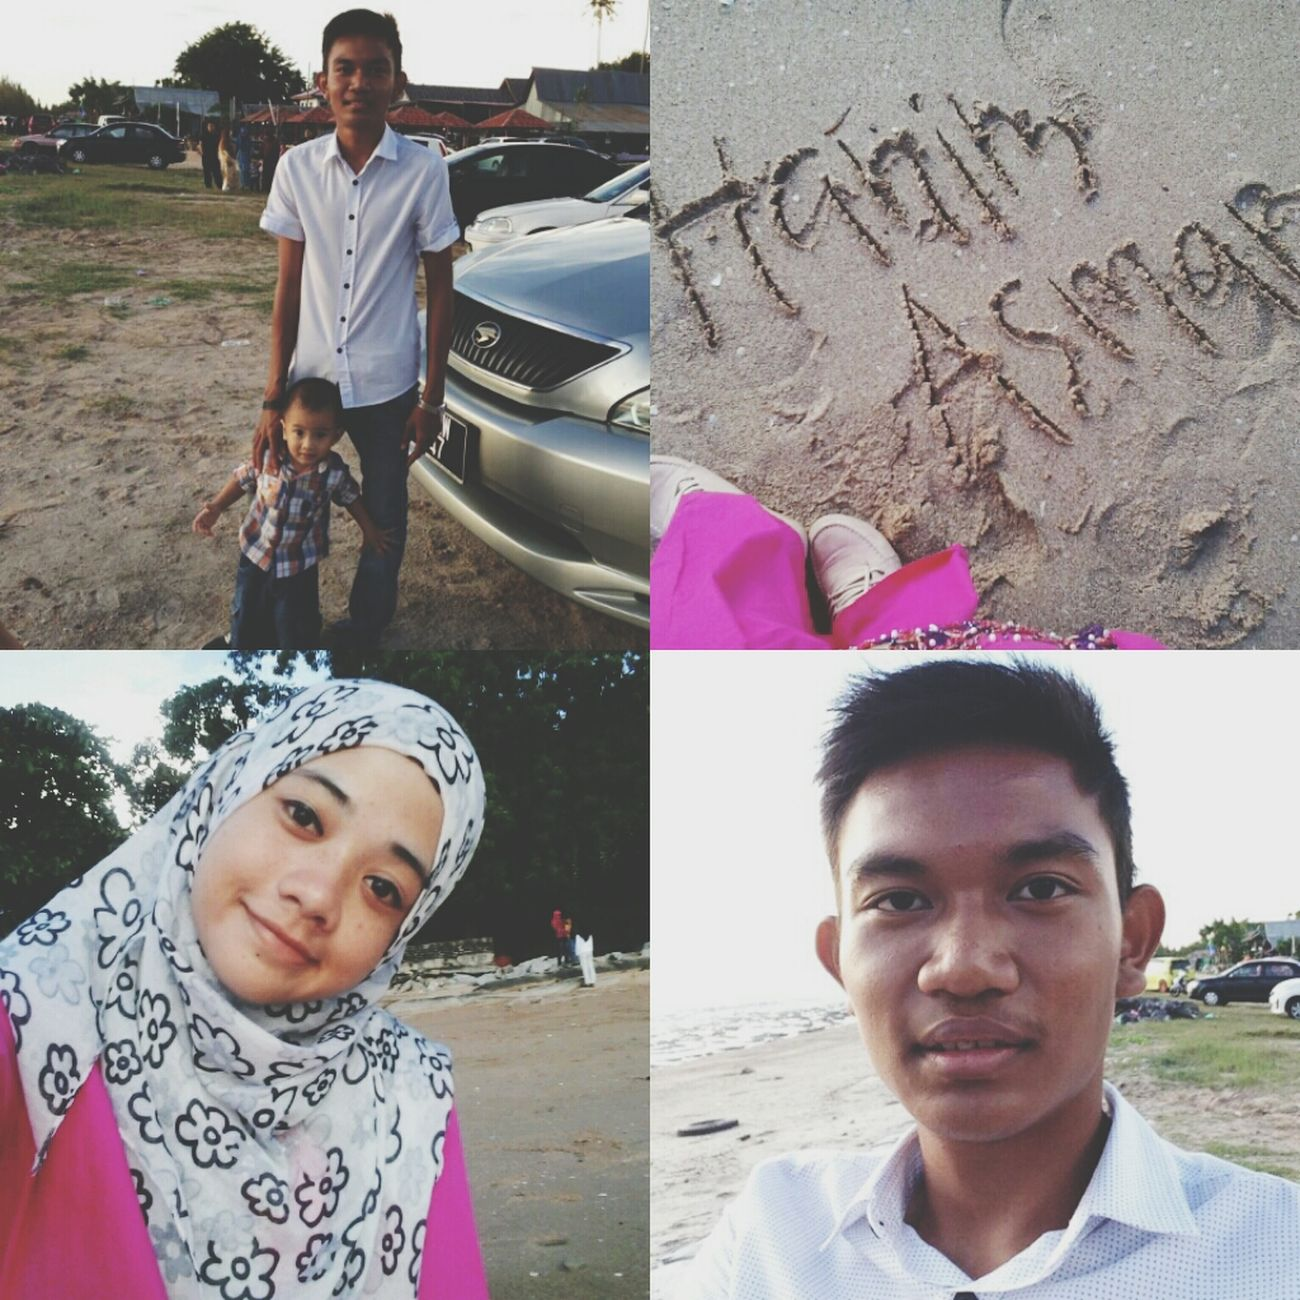 with loves! (padahal lain pantai) kekekeke